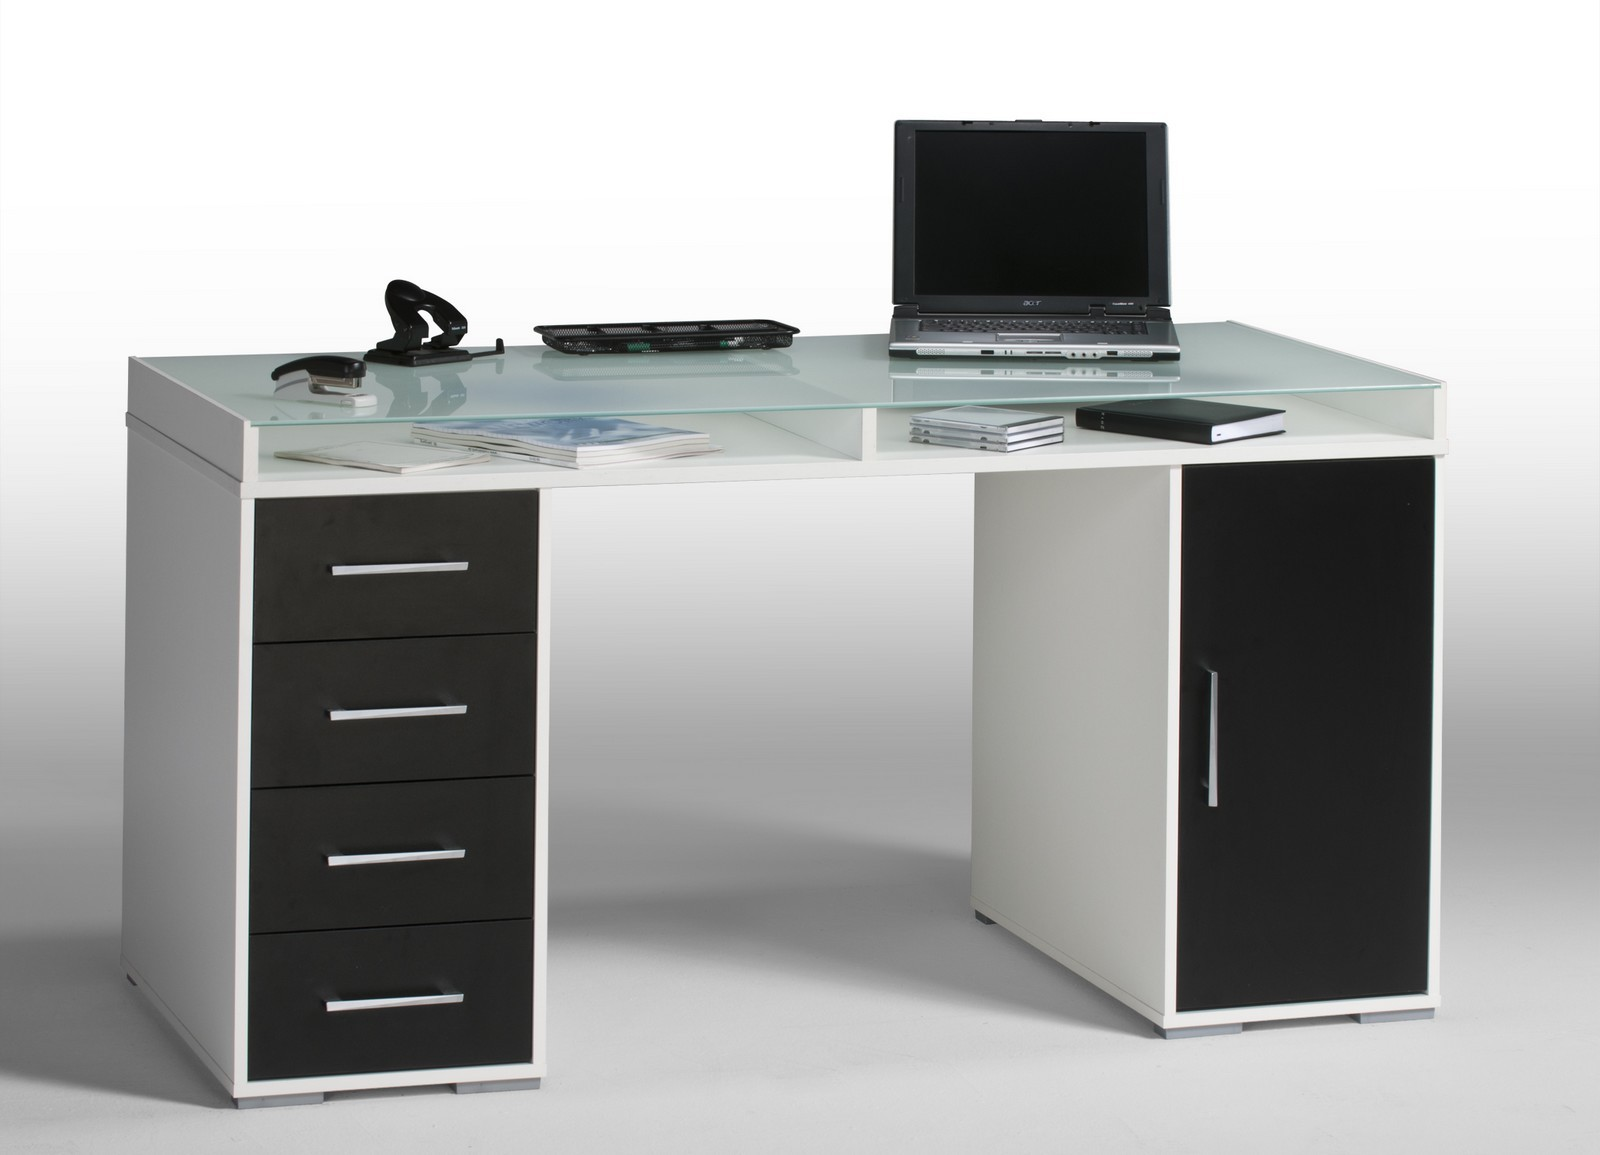 schreibtisch computertisch pc tisch ben wei schwarz ebay. Black Bedroom Furniture Sets. Home Design Ideas